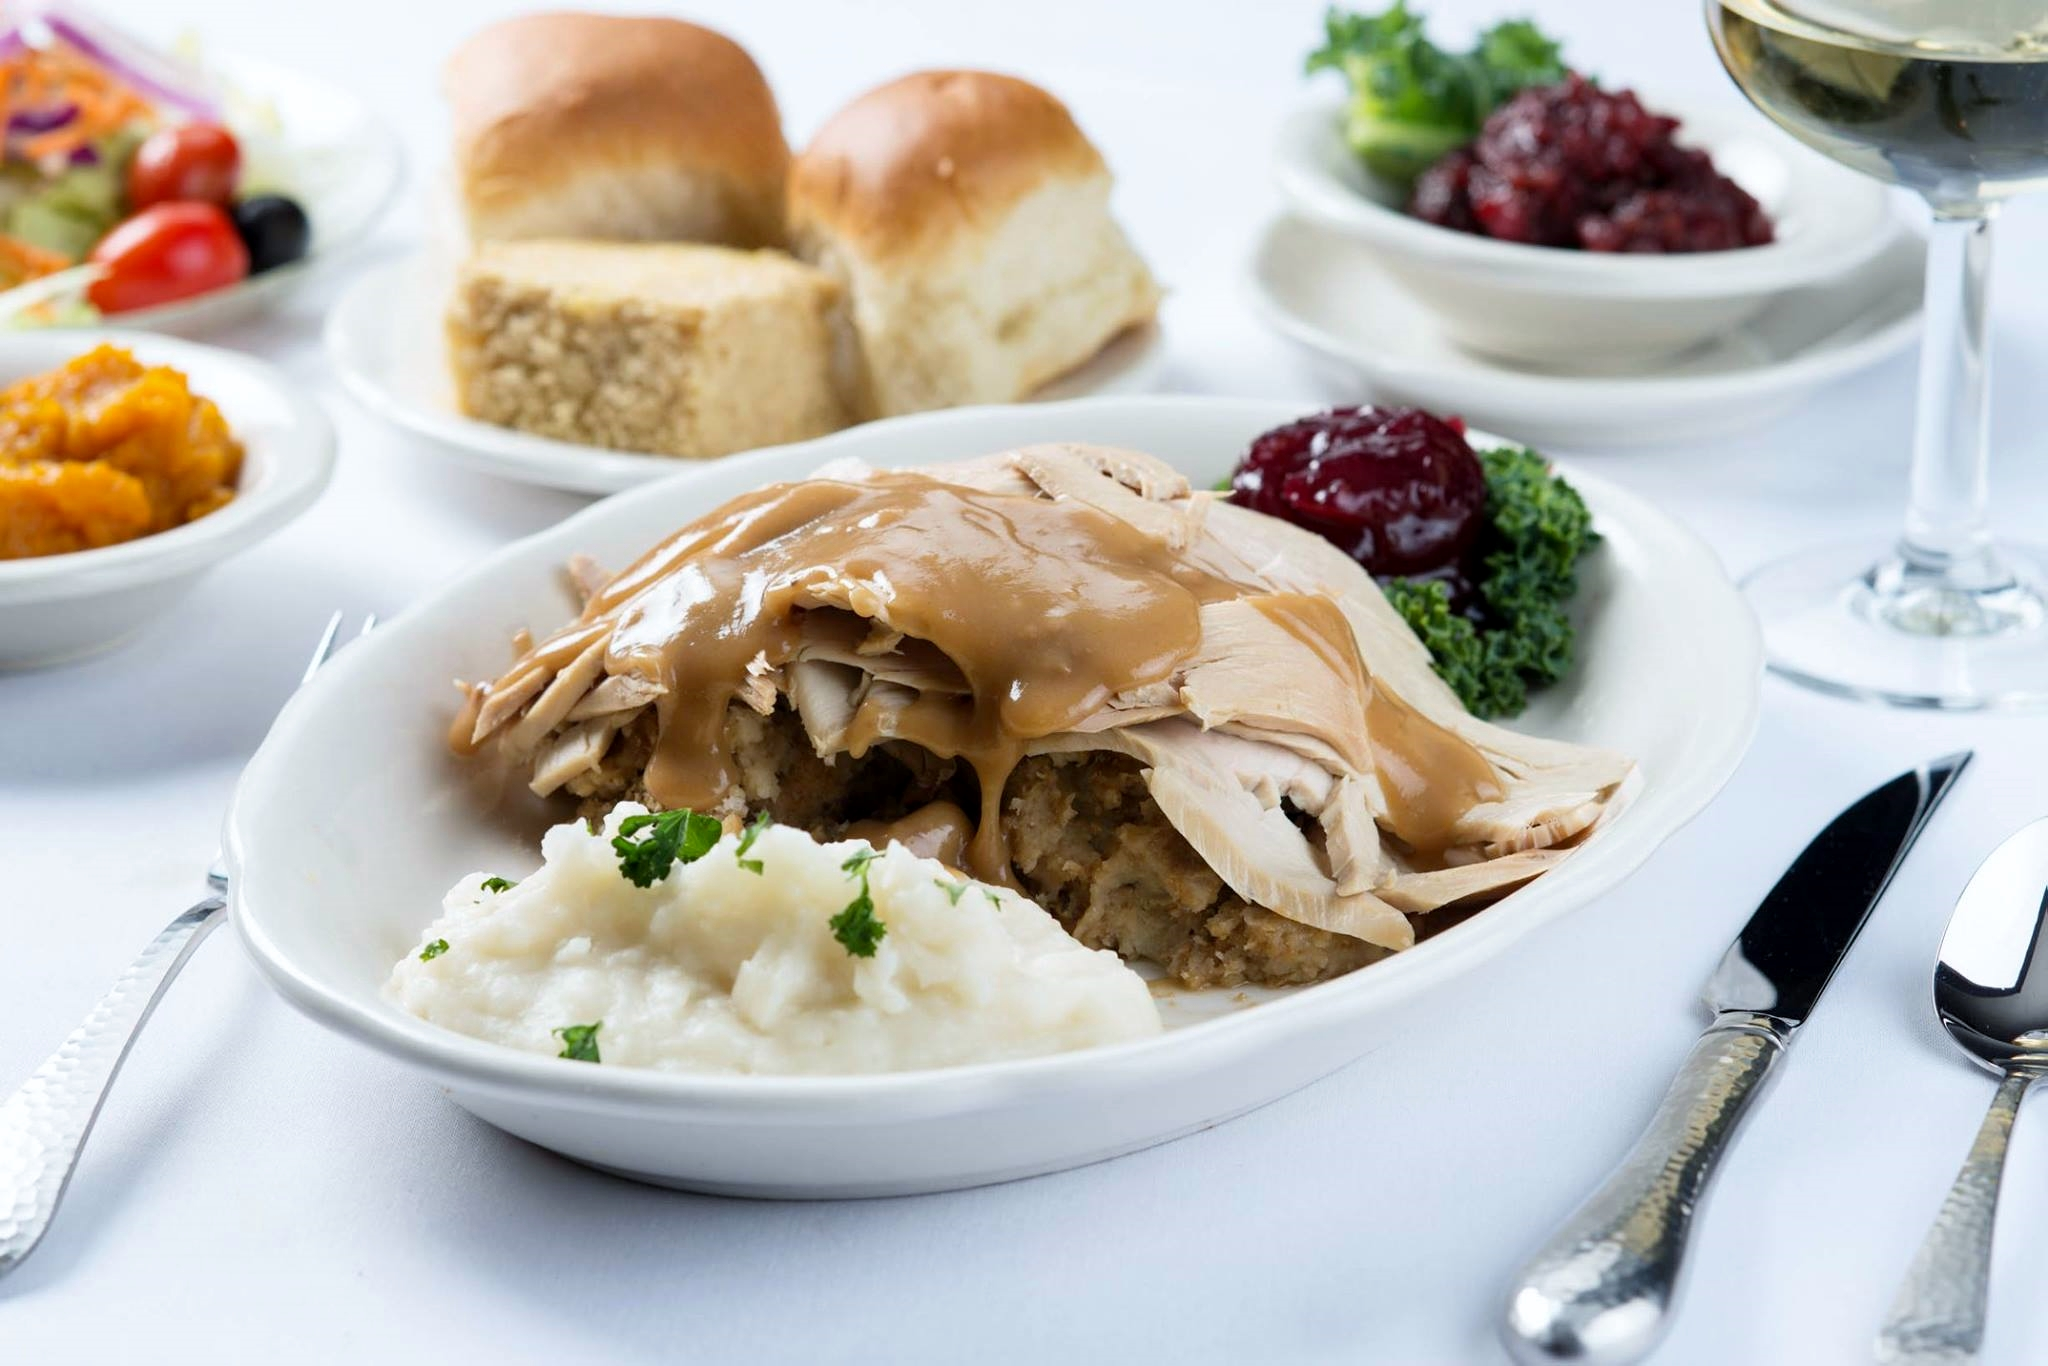 Hart's Turkey Farm has been serving the Thanksgiving bird since 1954.